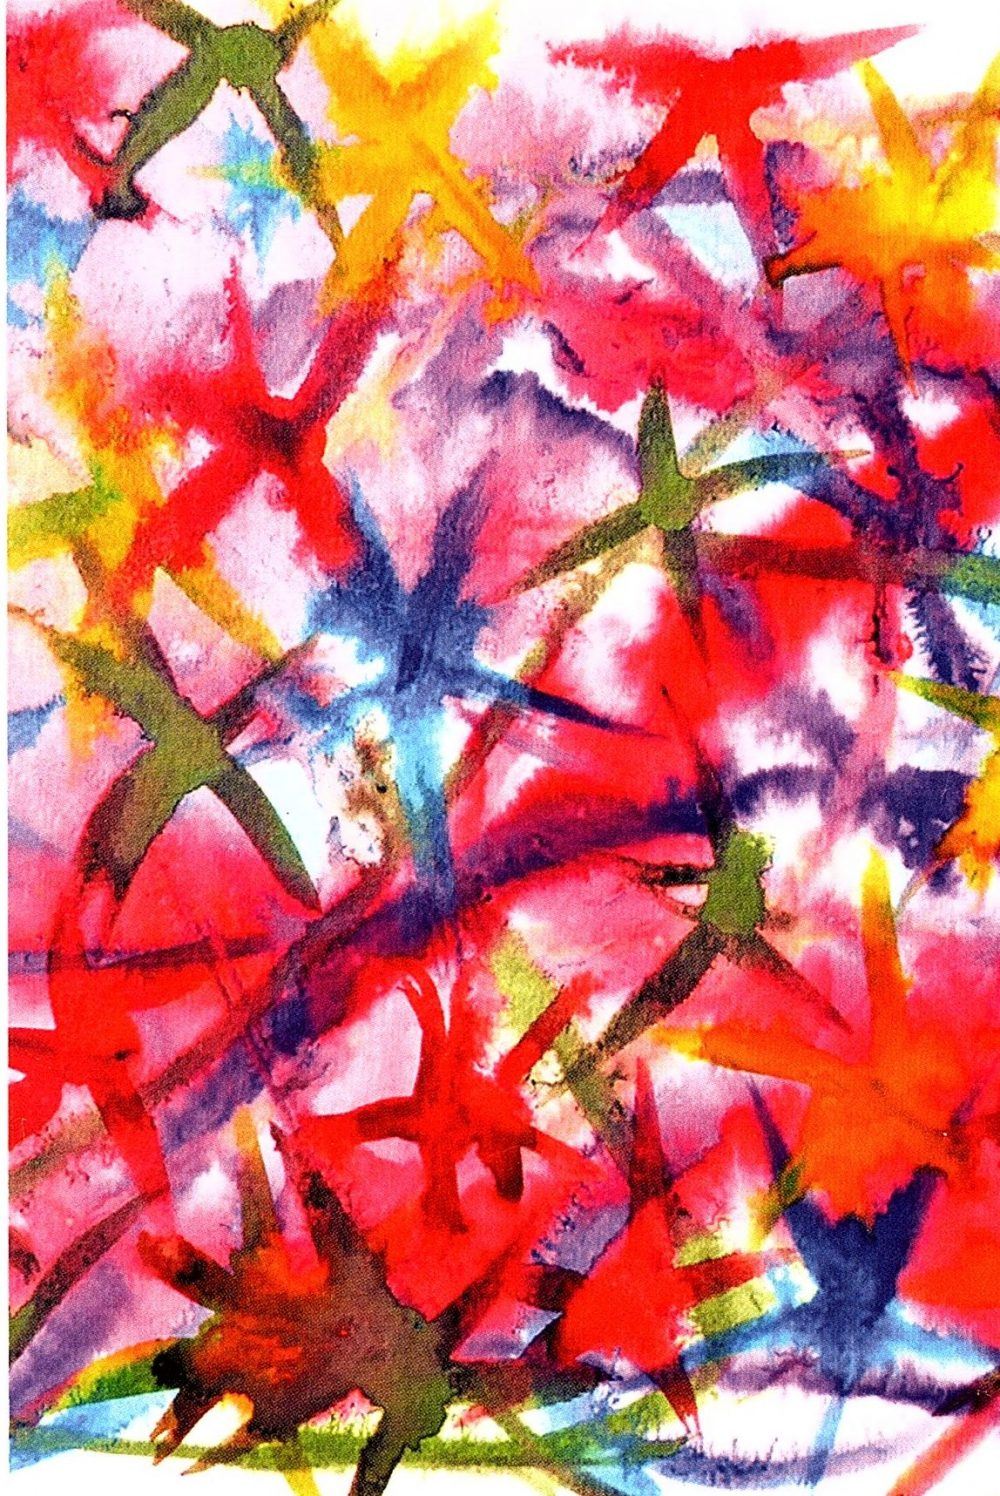 Painting with Parkinson's – Silver Lining